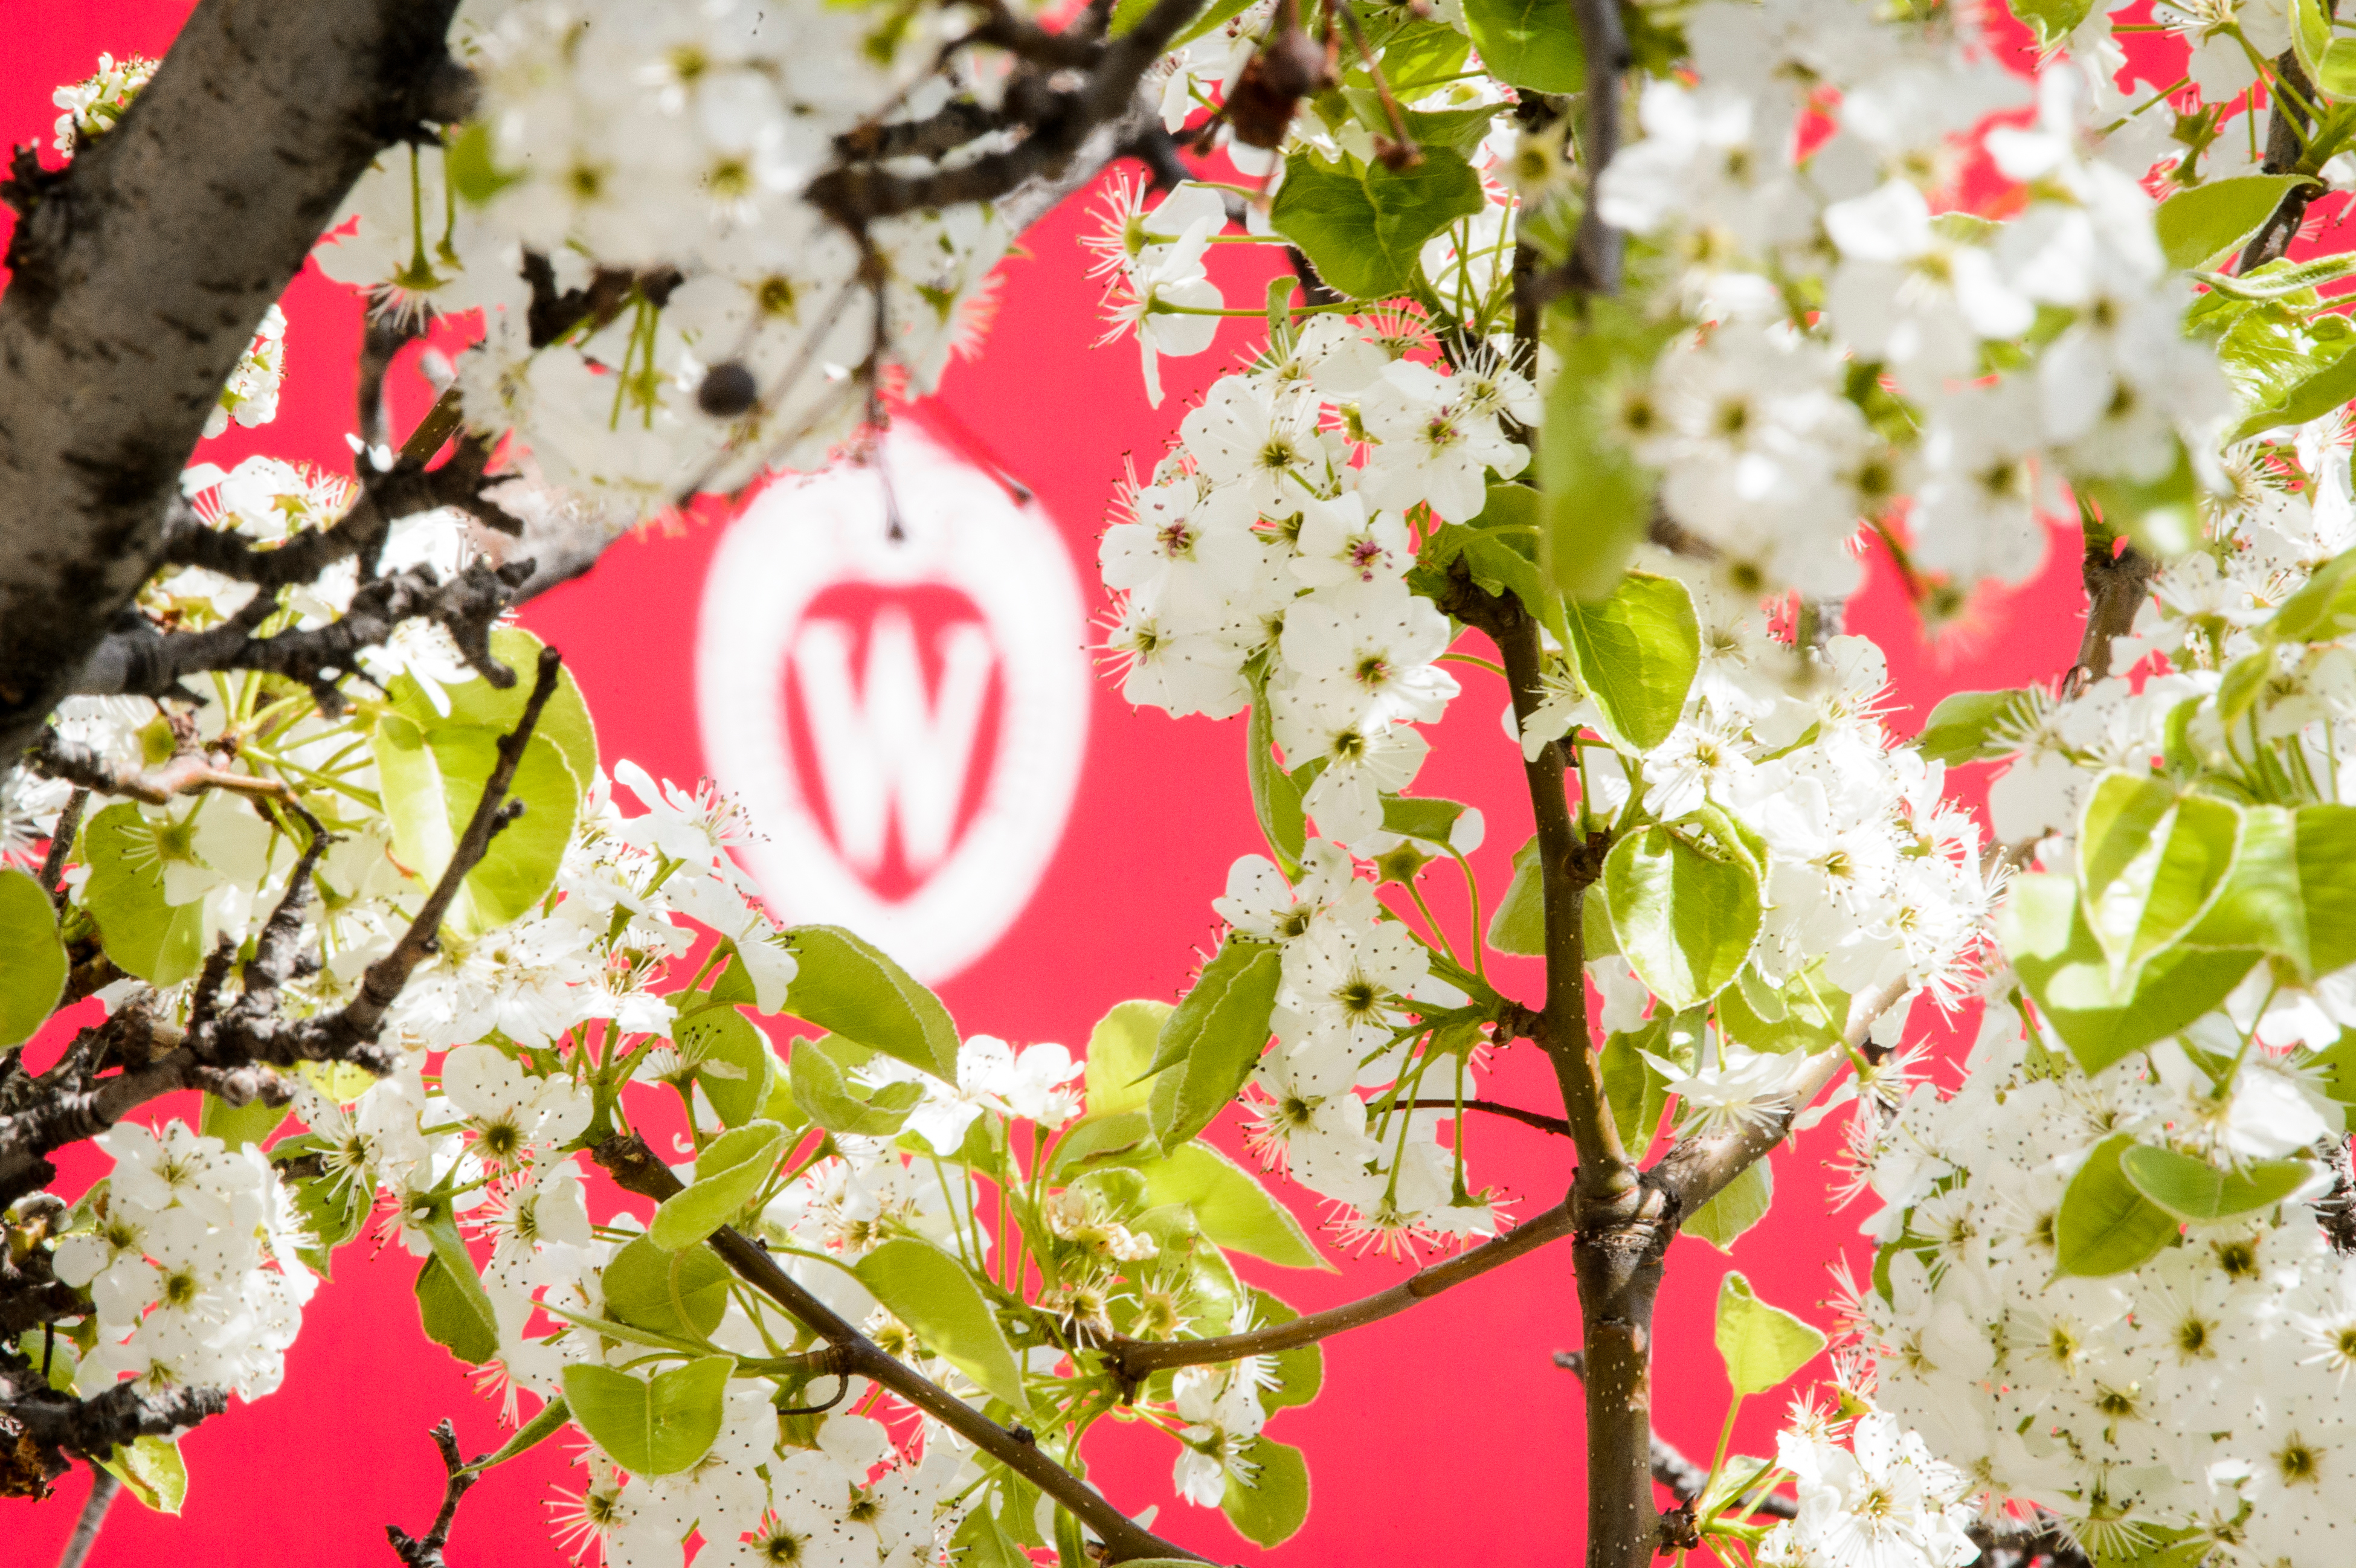 A W crest is pictured surrounded by the spring blooms of a pear tree.